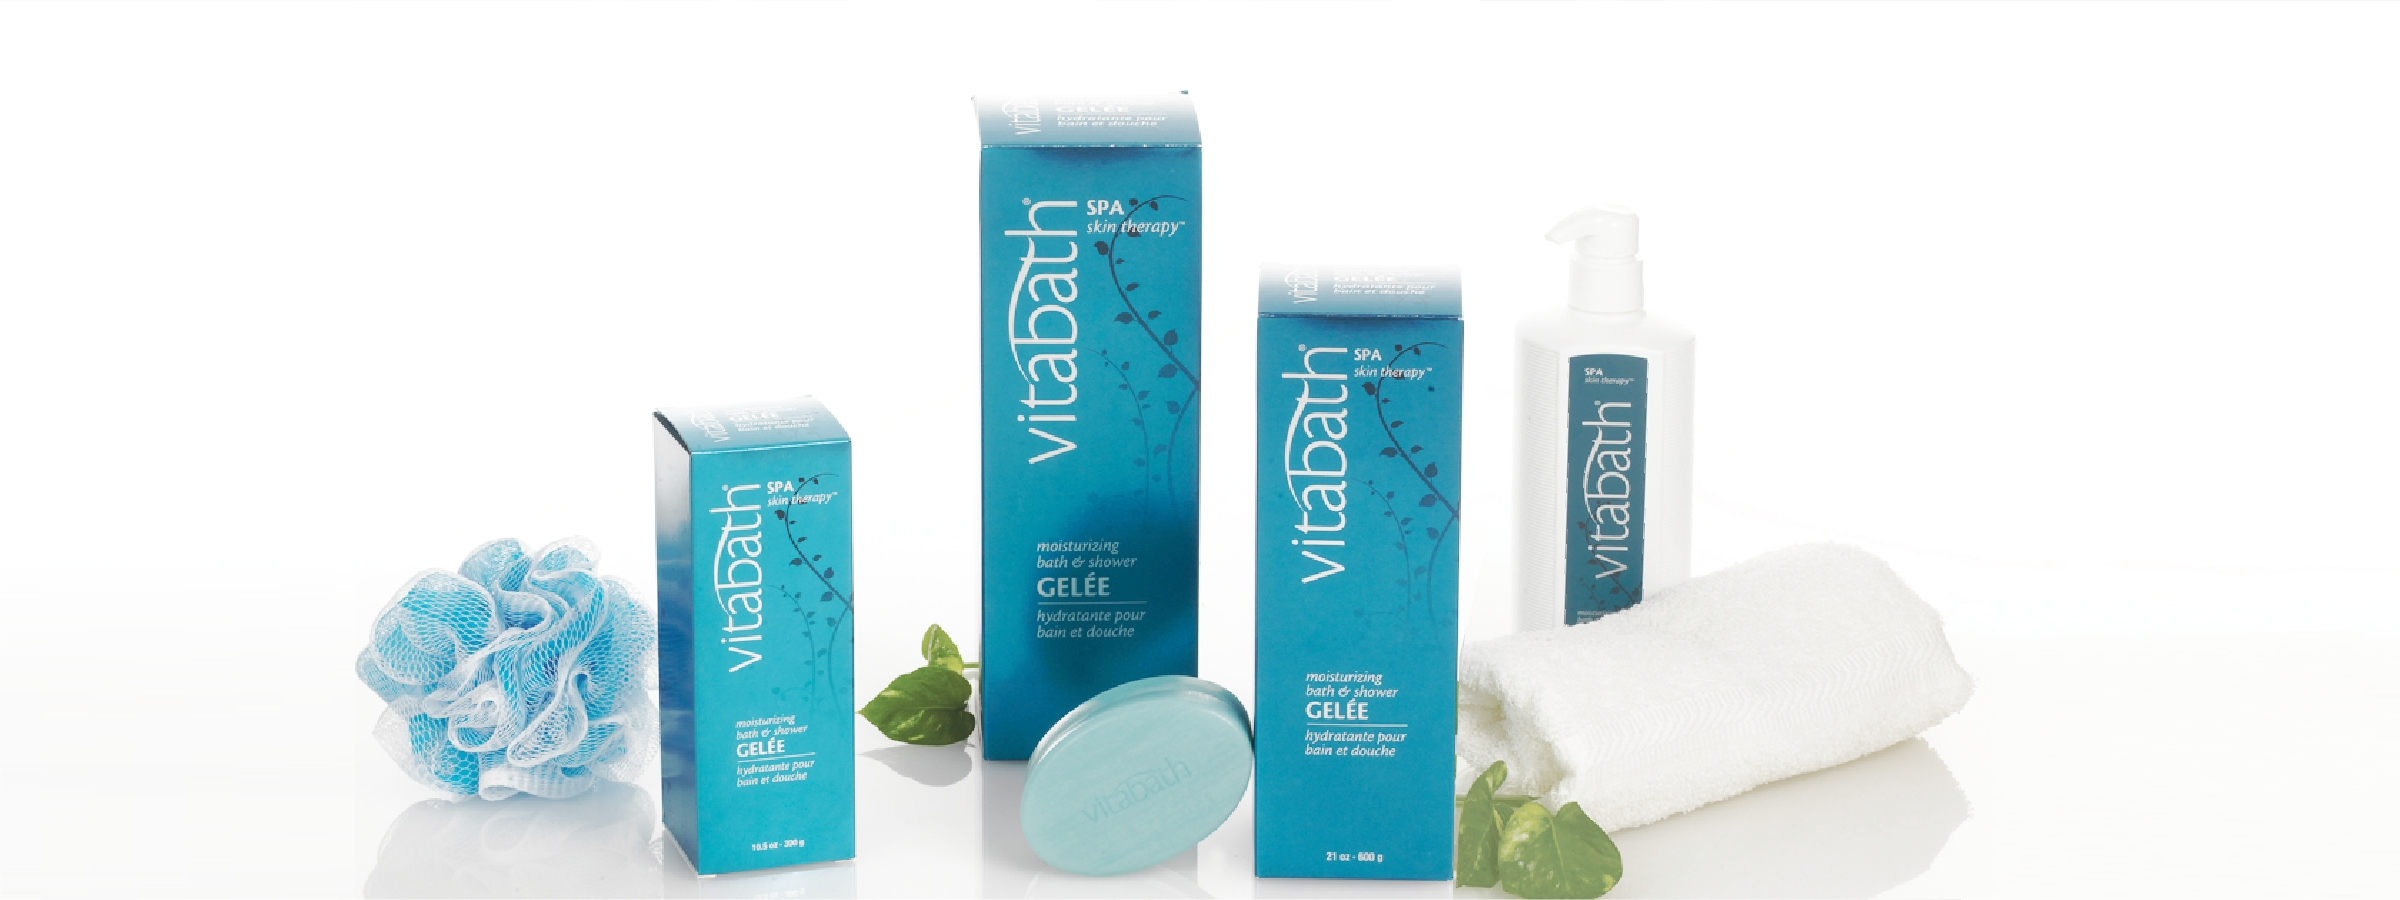 About Vitabath Products and History